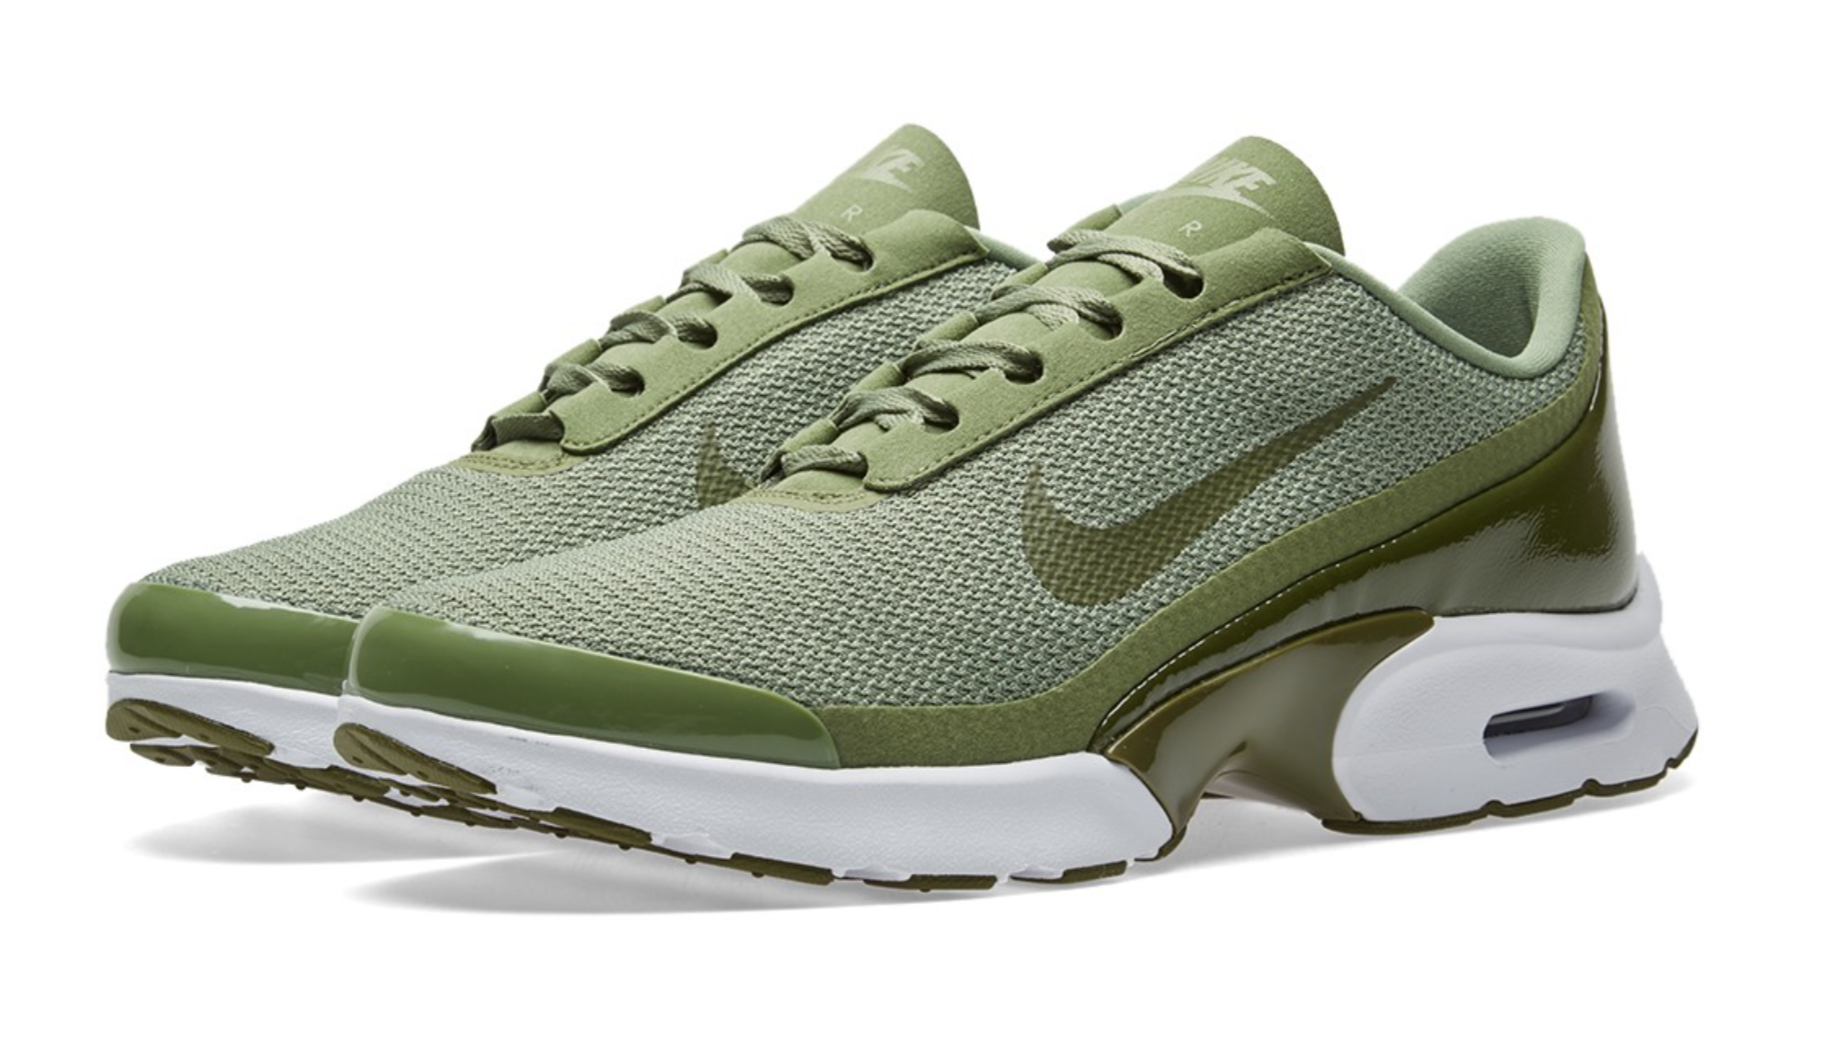 The Nike Air Max Jewell Palm Green is showcased and consists